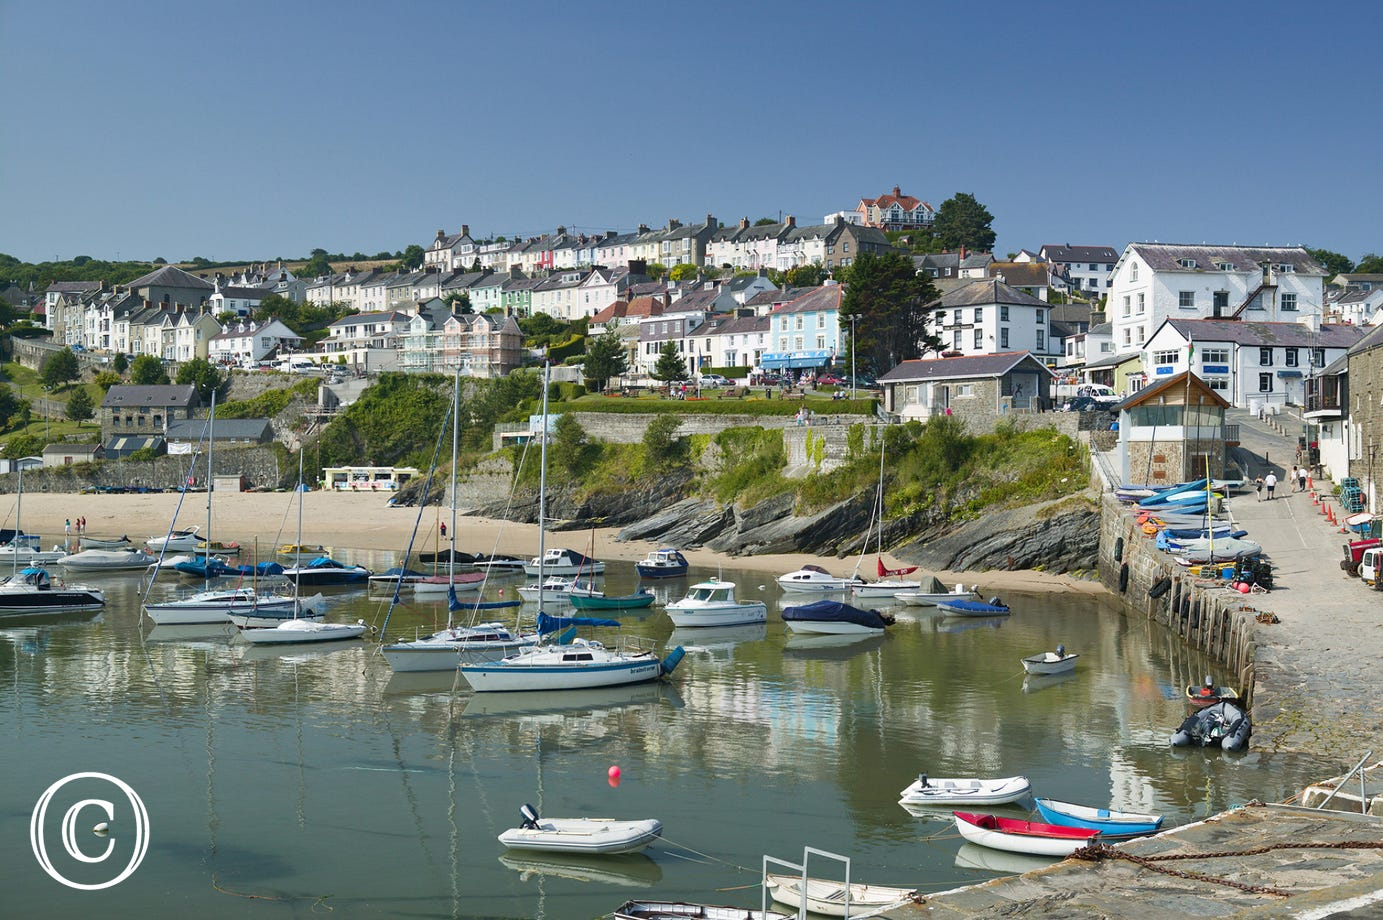 New Quay seaside town is just 7 miles away.